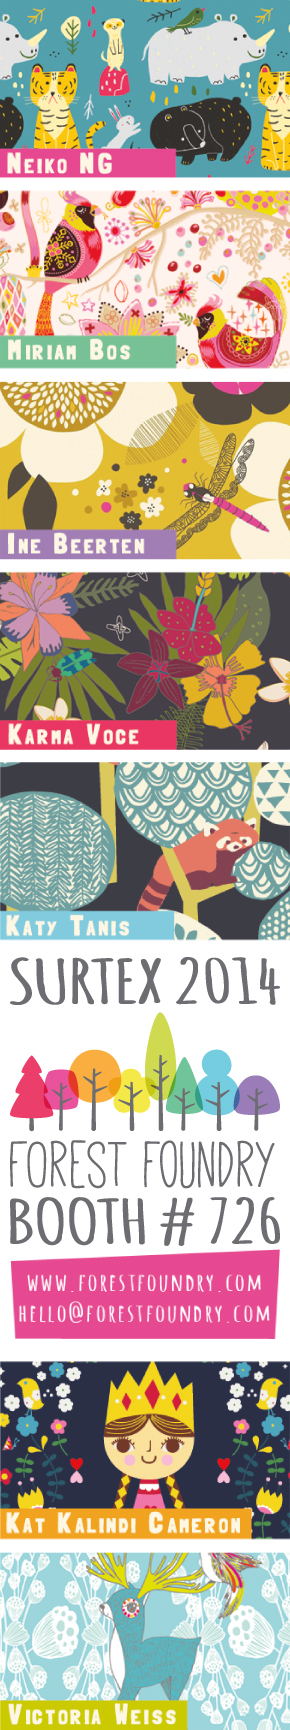 Surtex 2014 Forest Foundry Flyer